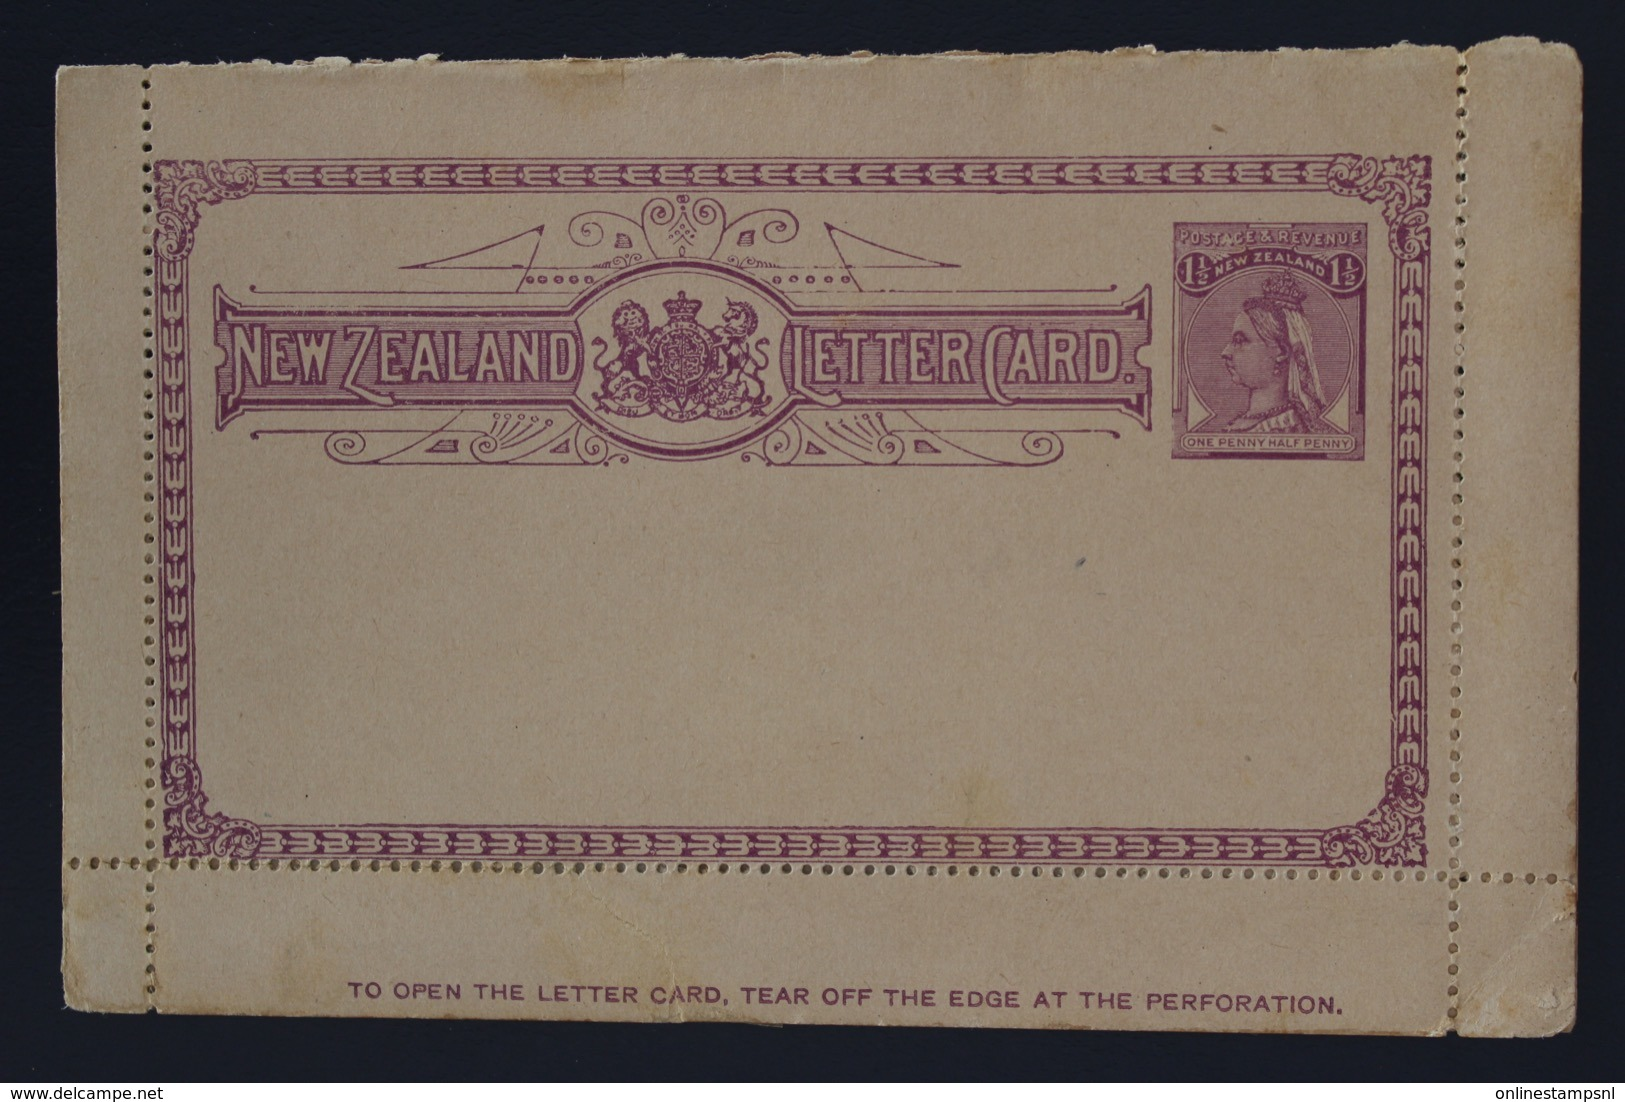 New Zealand Lettercard Letter Card Not Used 1895 - Briefe U. Dokumente